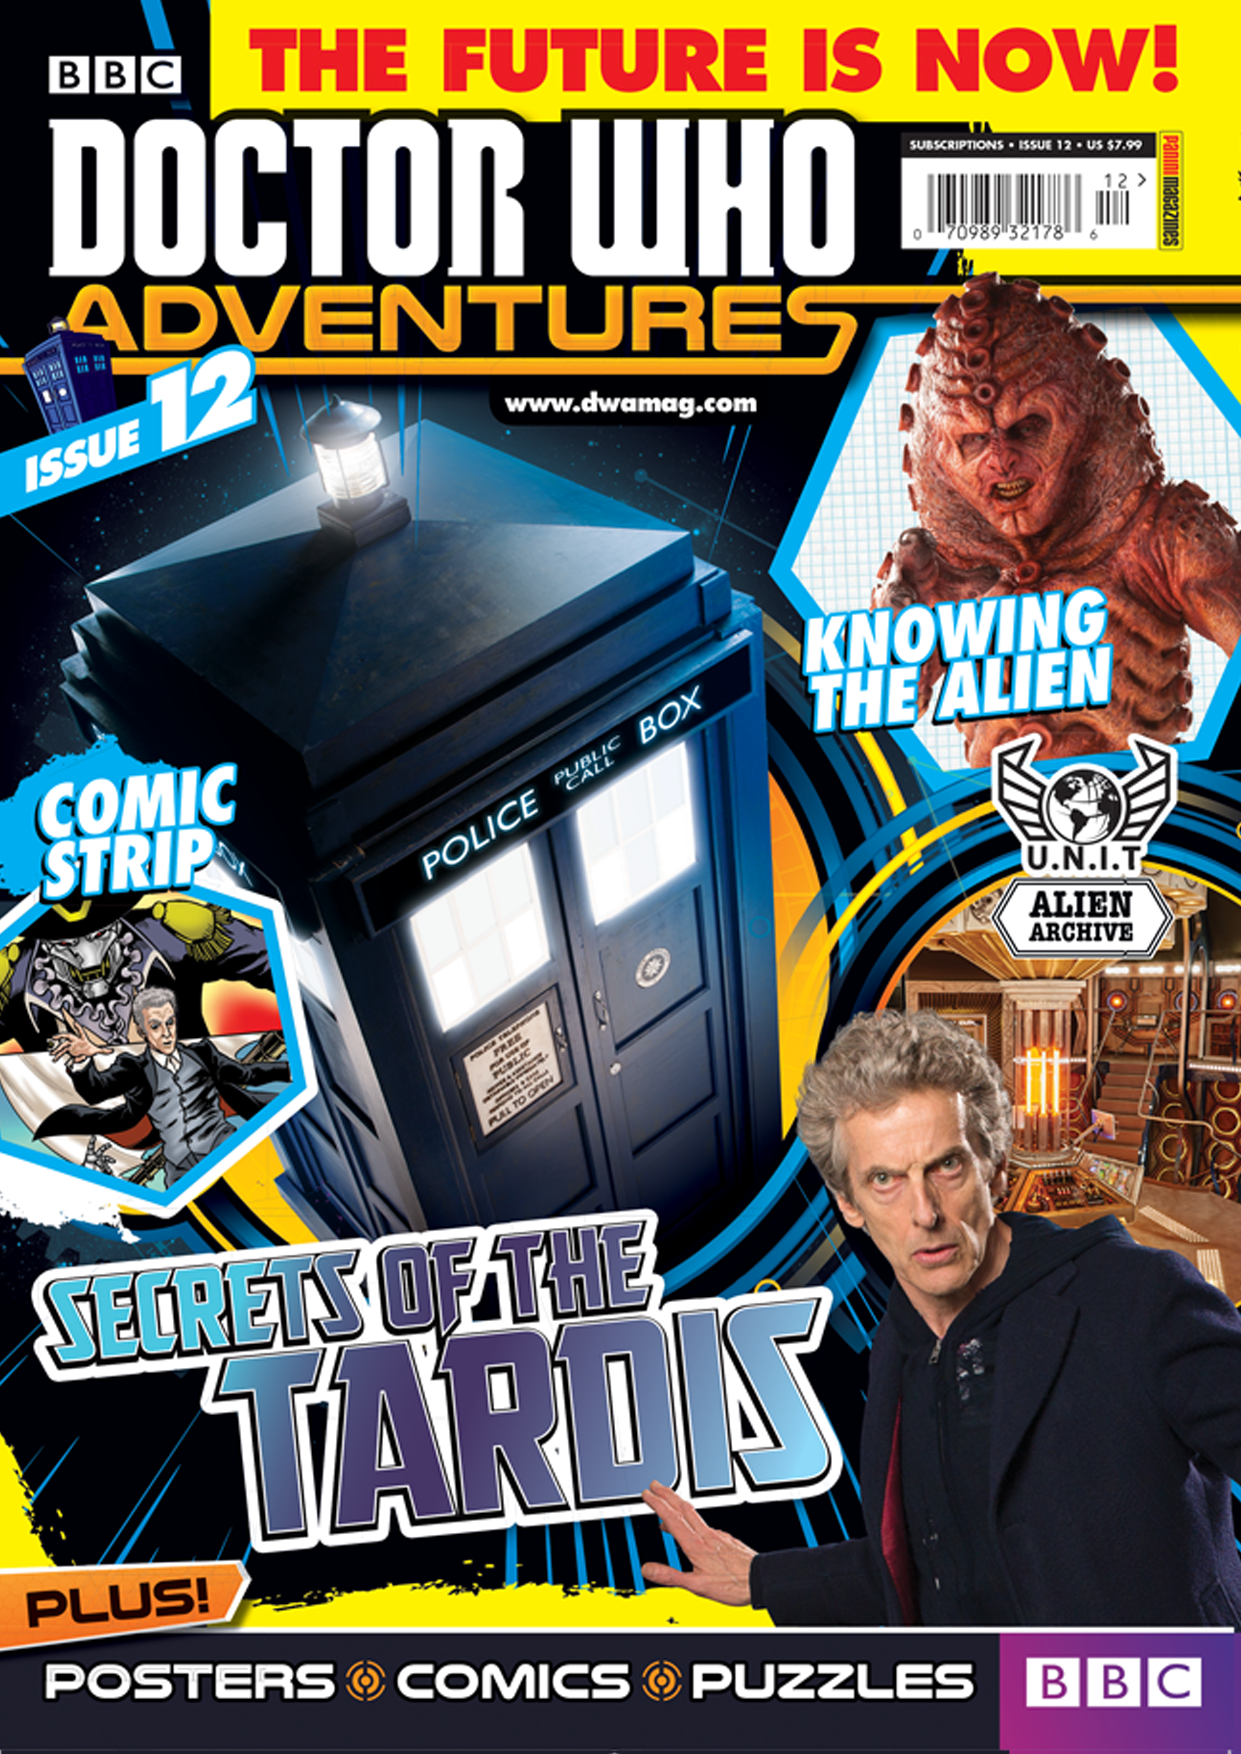 Doctor Who Adventures #12